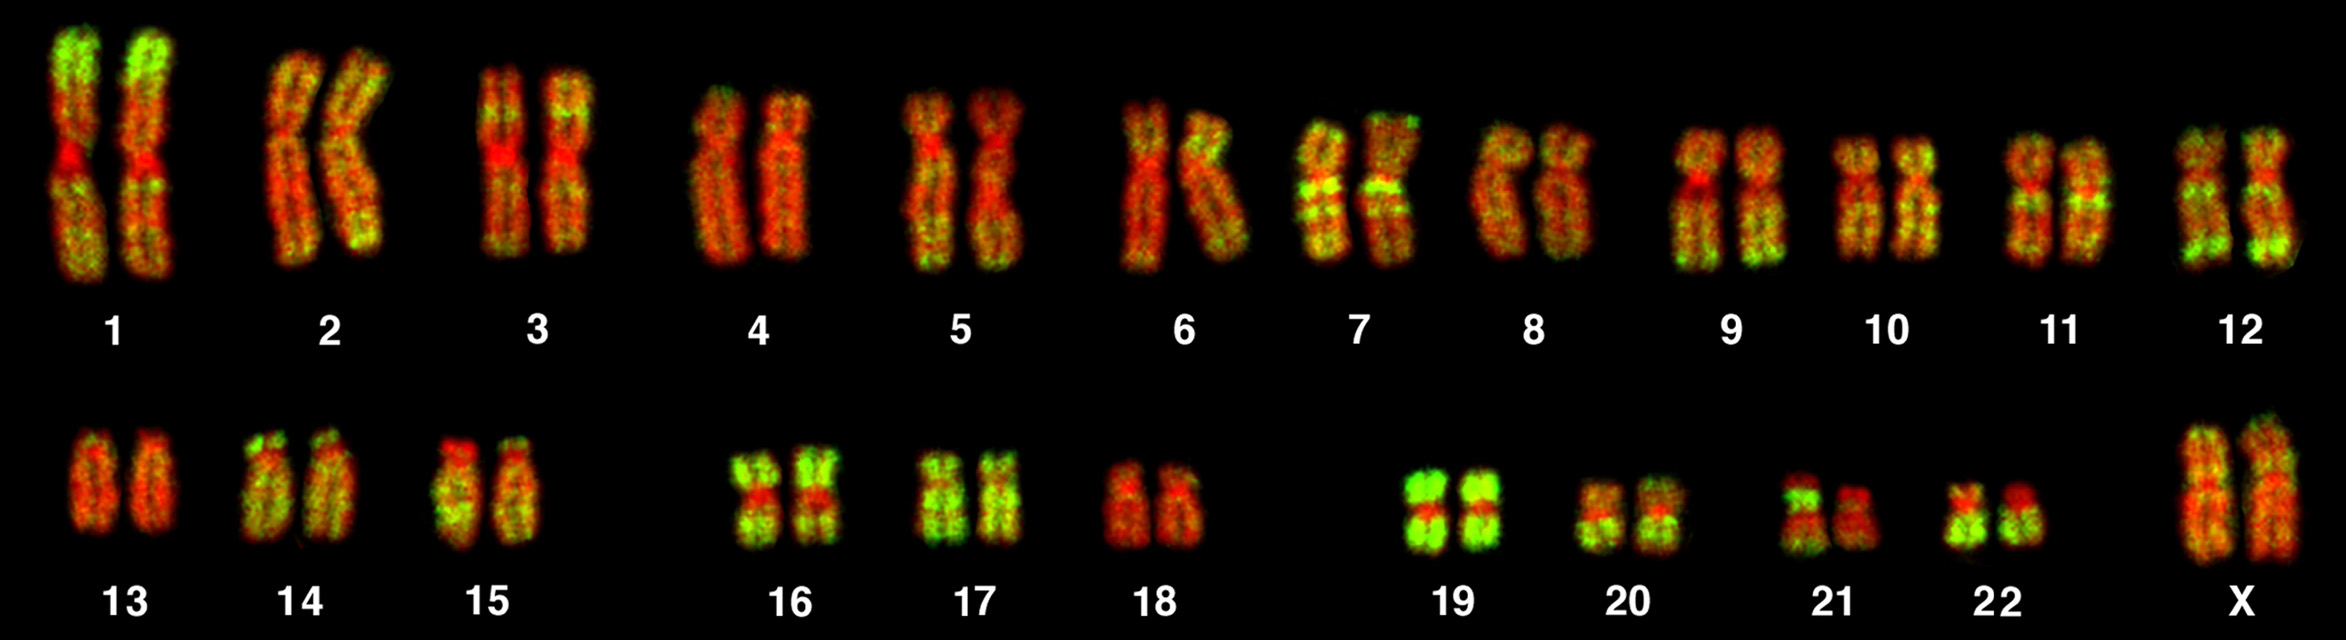 Fluorescent microscopy image of a human female karyotype, showing 23 pairs of chromosomes . The DNA is stained red, with regions rich in housekeeping genes further stained in green. The largest chromosomes are around 10 times the size of the smallest.[44]